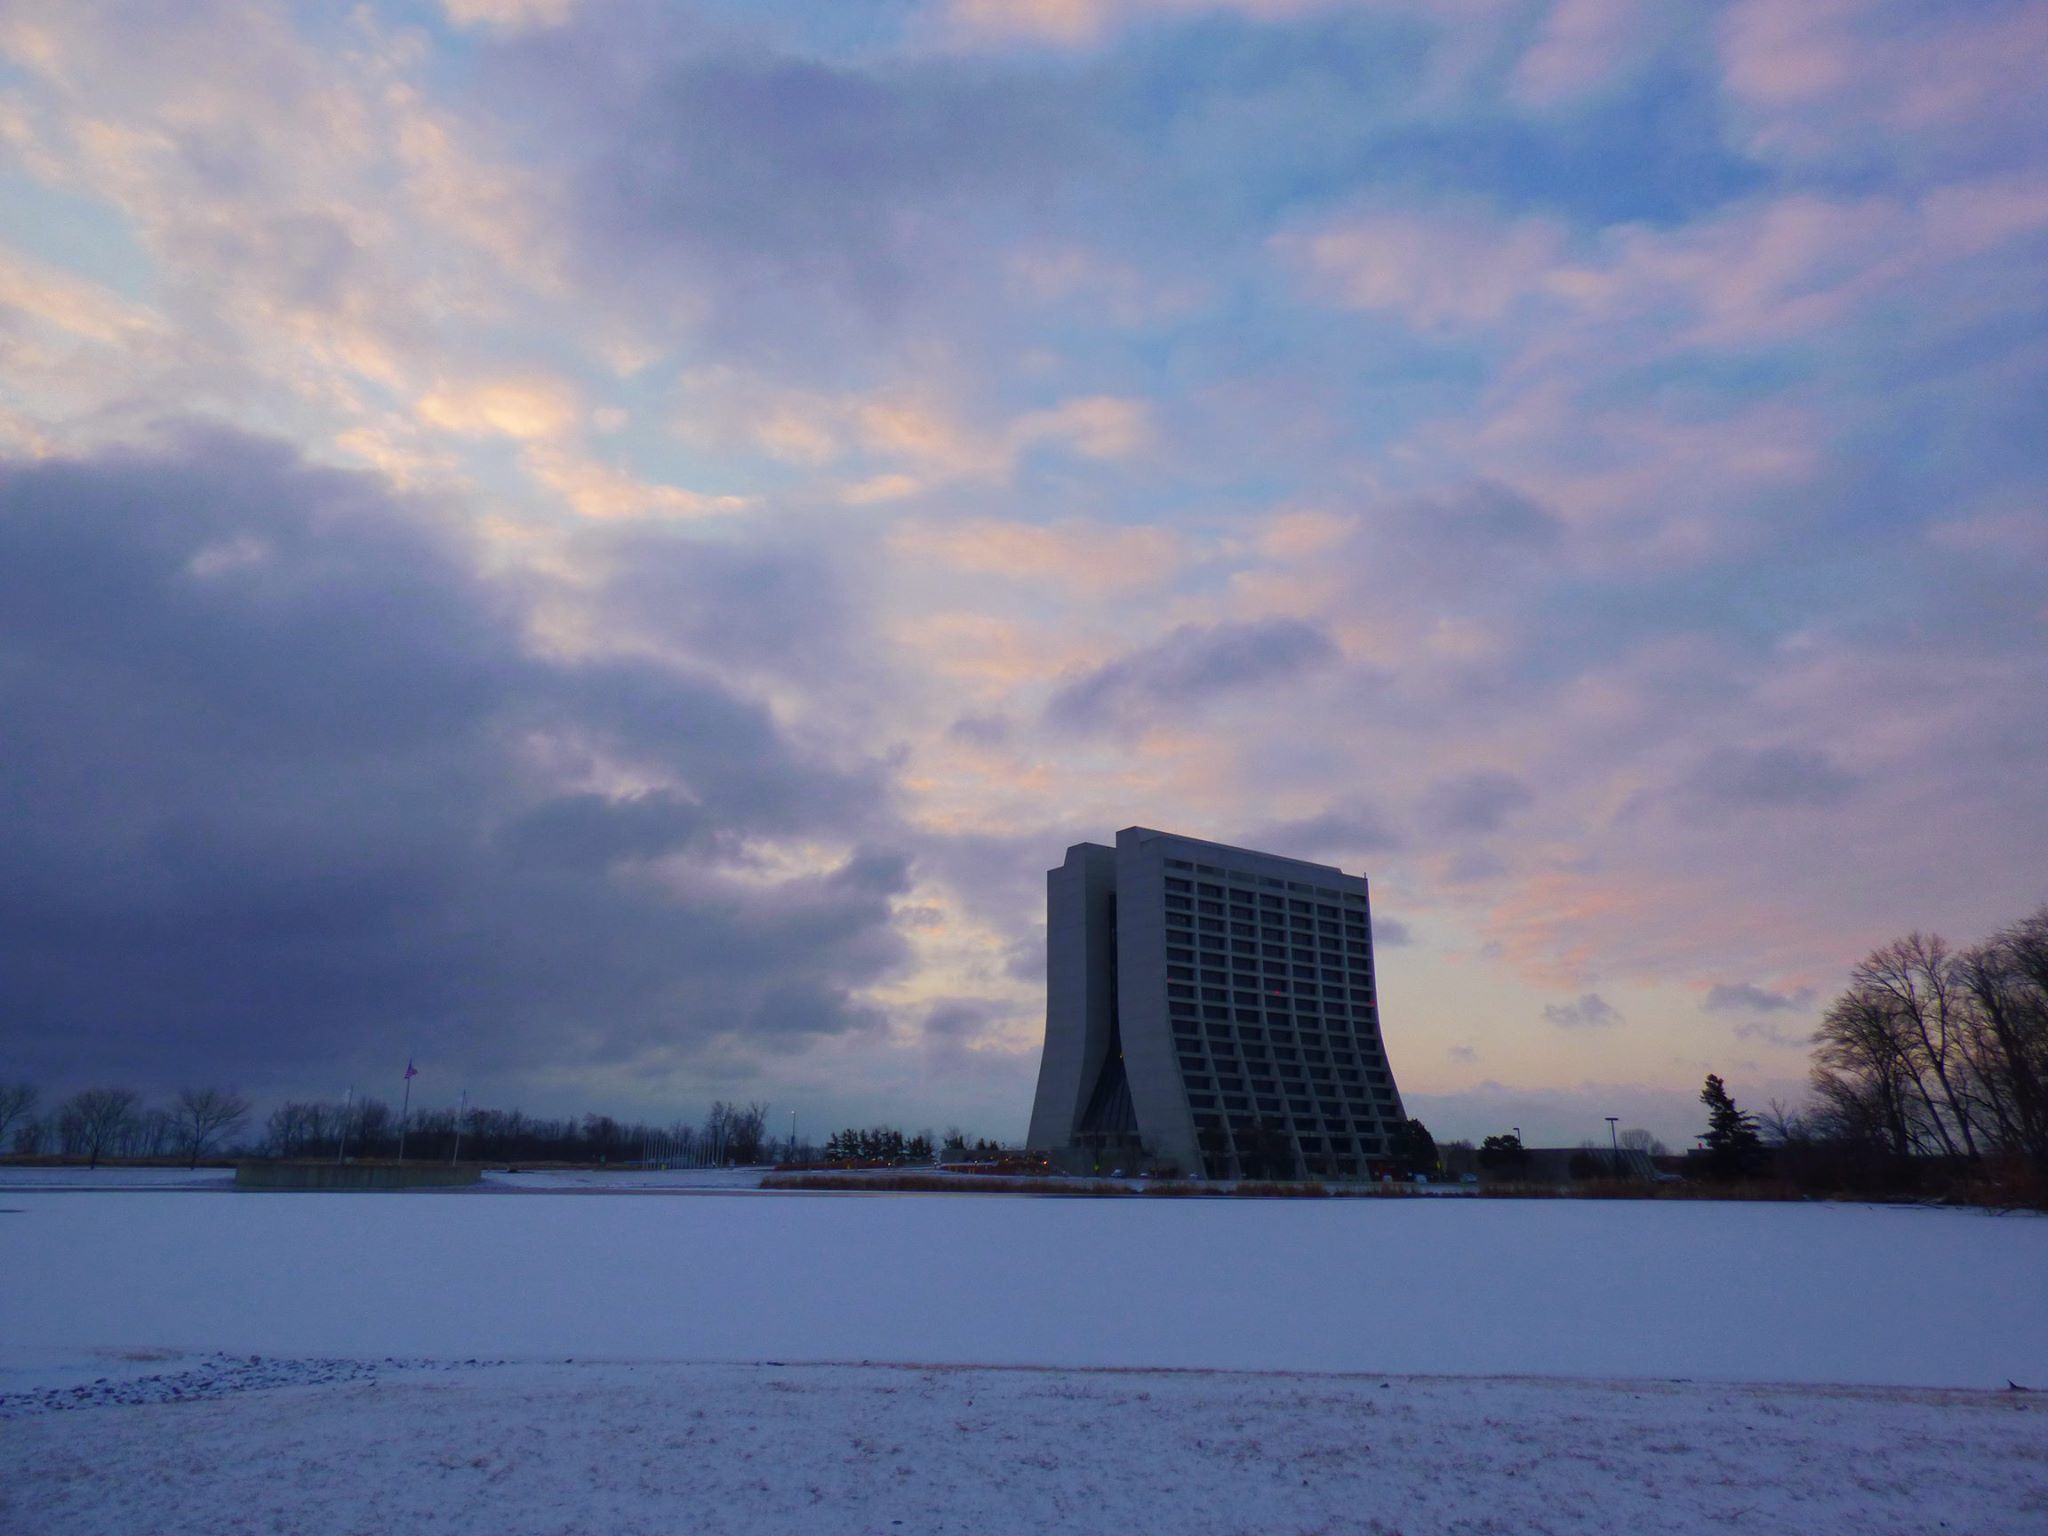 Wilson Hall and its surrounding scene is awash in light lavender light. Photo: Amy Scroggins, landscape, building, winter, snow, sky, cloud